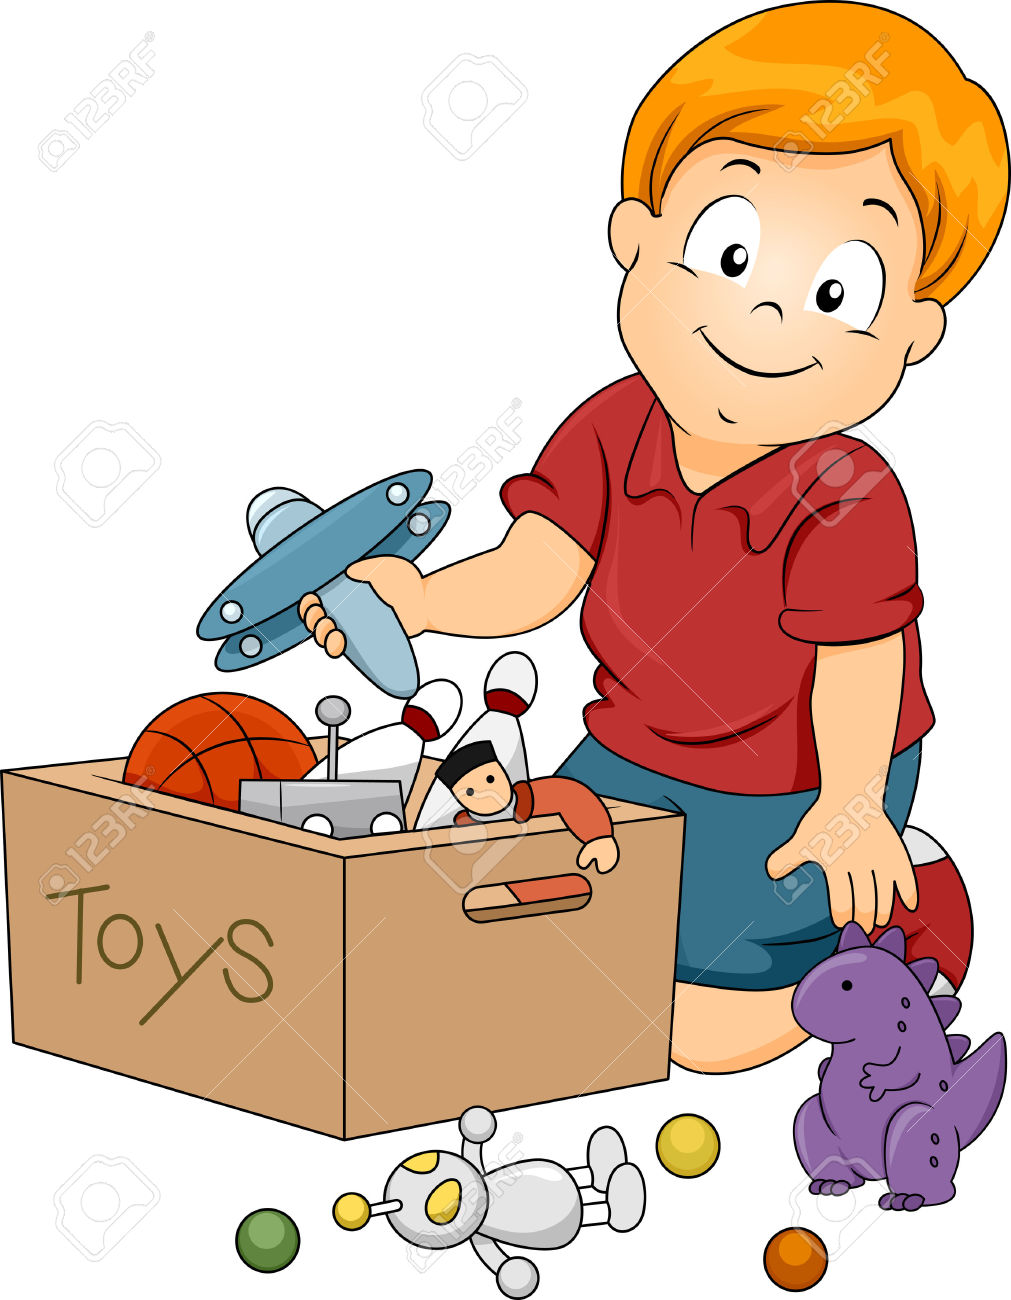 Tidy toys clipart.